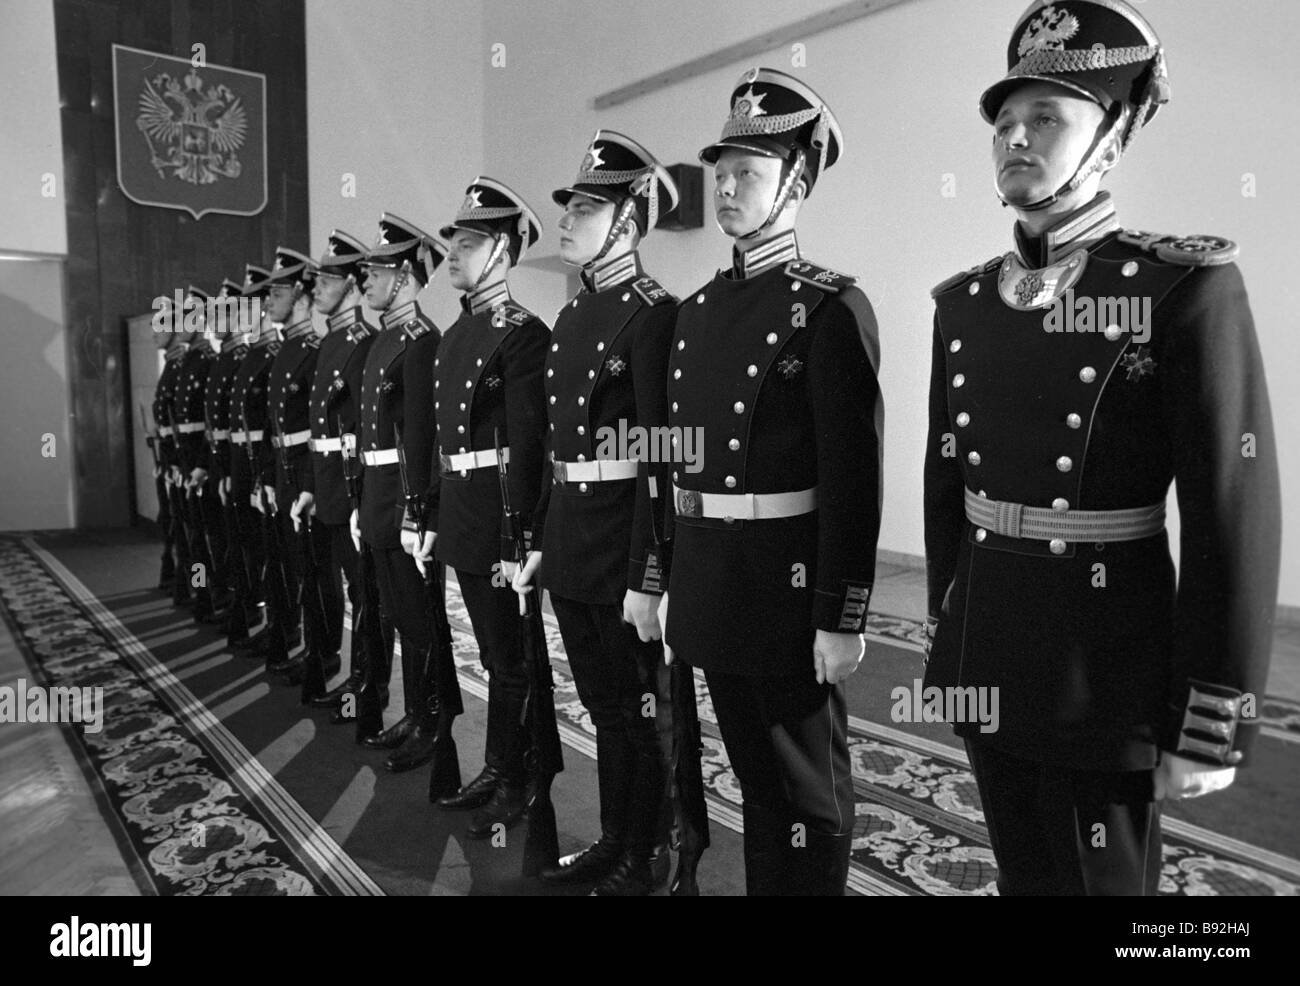 Rank of Presidential Regiment s soldiers in dress uniform - Stock Image